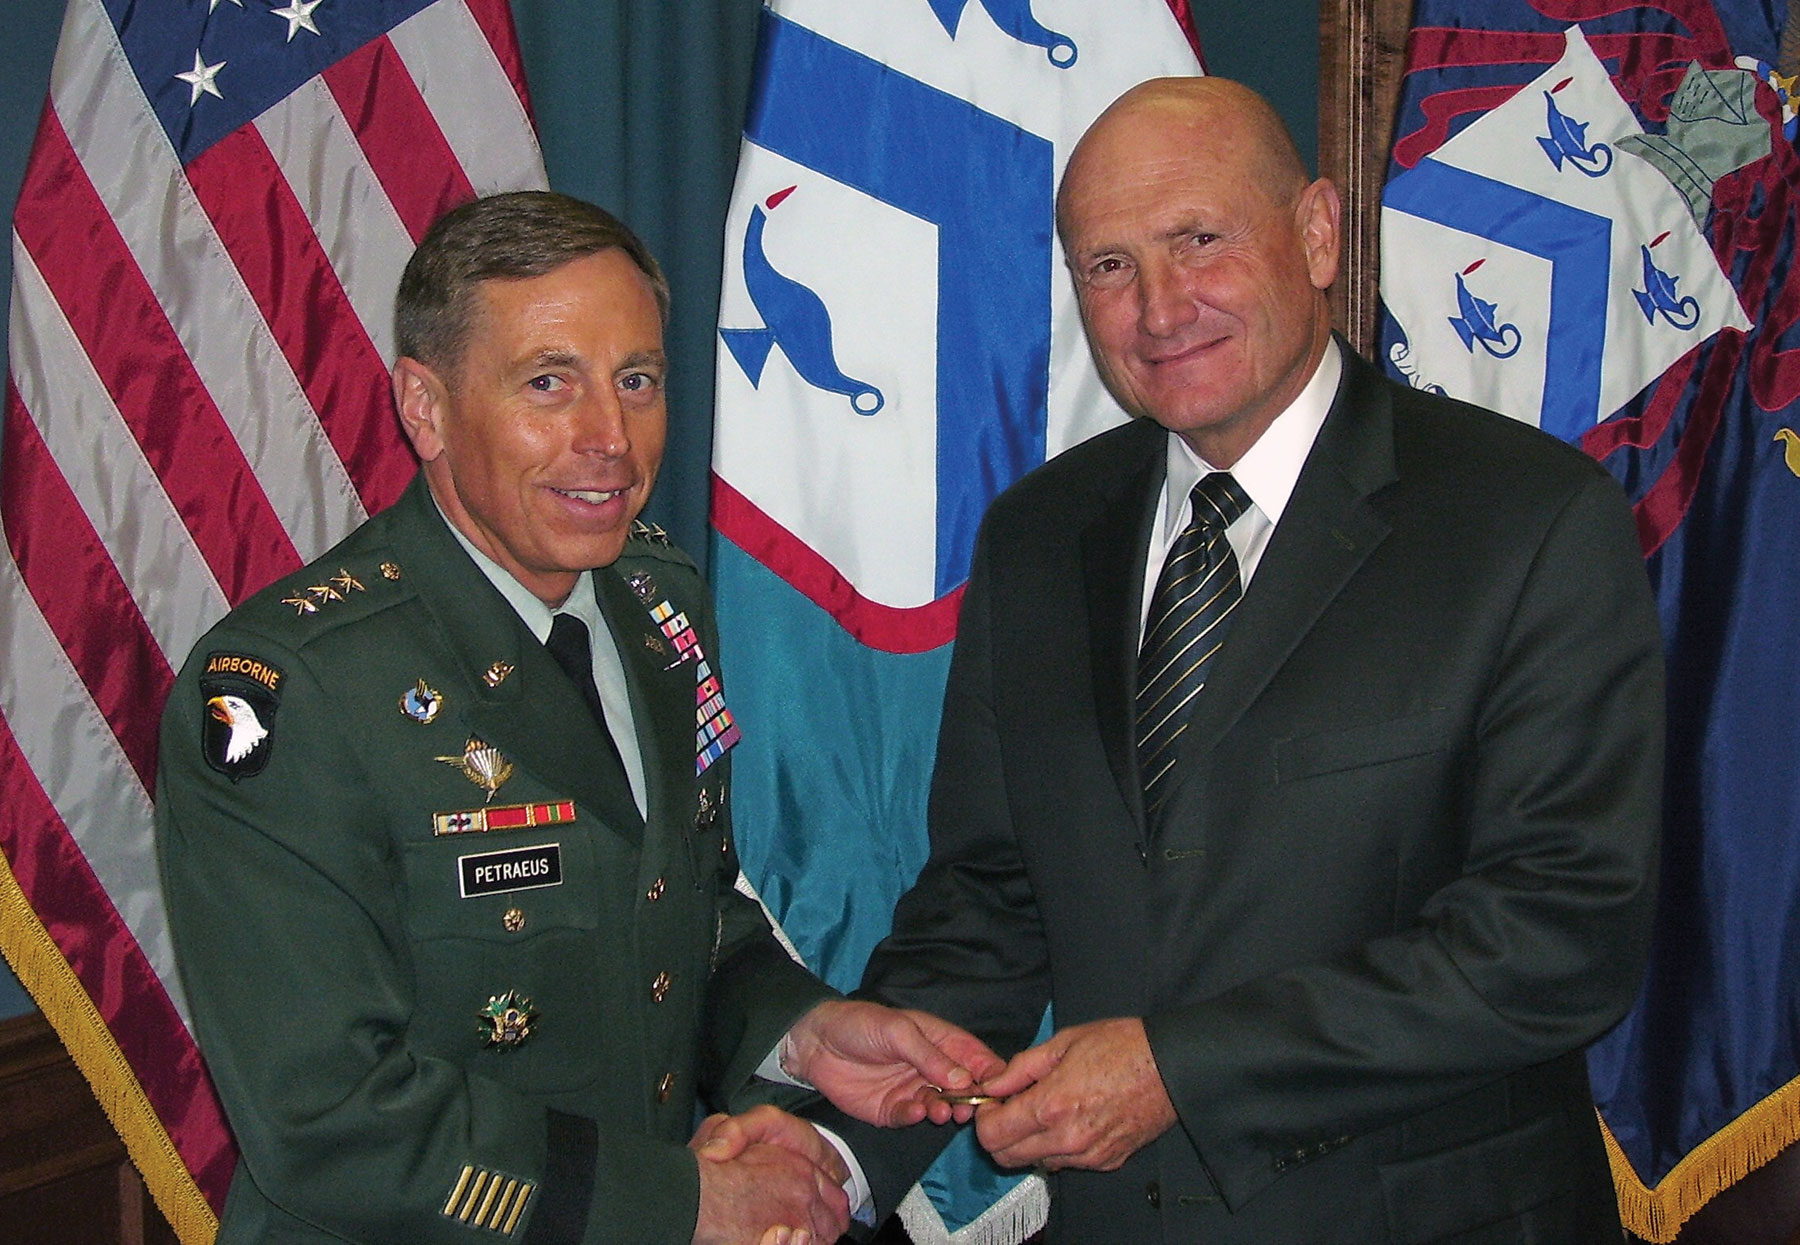 Lt. Gen. David H. Petraeus, then commandant of CGSC and Combined Arms Center commander, presents Hyrum Smith, Foundation Vice Chairman, with a commander's coin in appreciation for his presentation to CGSC staff and faculty June 30, 2006. (photo by Bob Ulin)